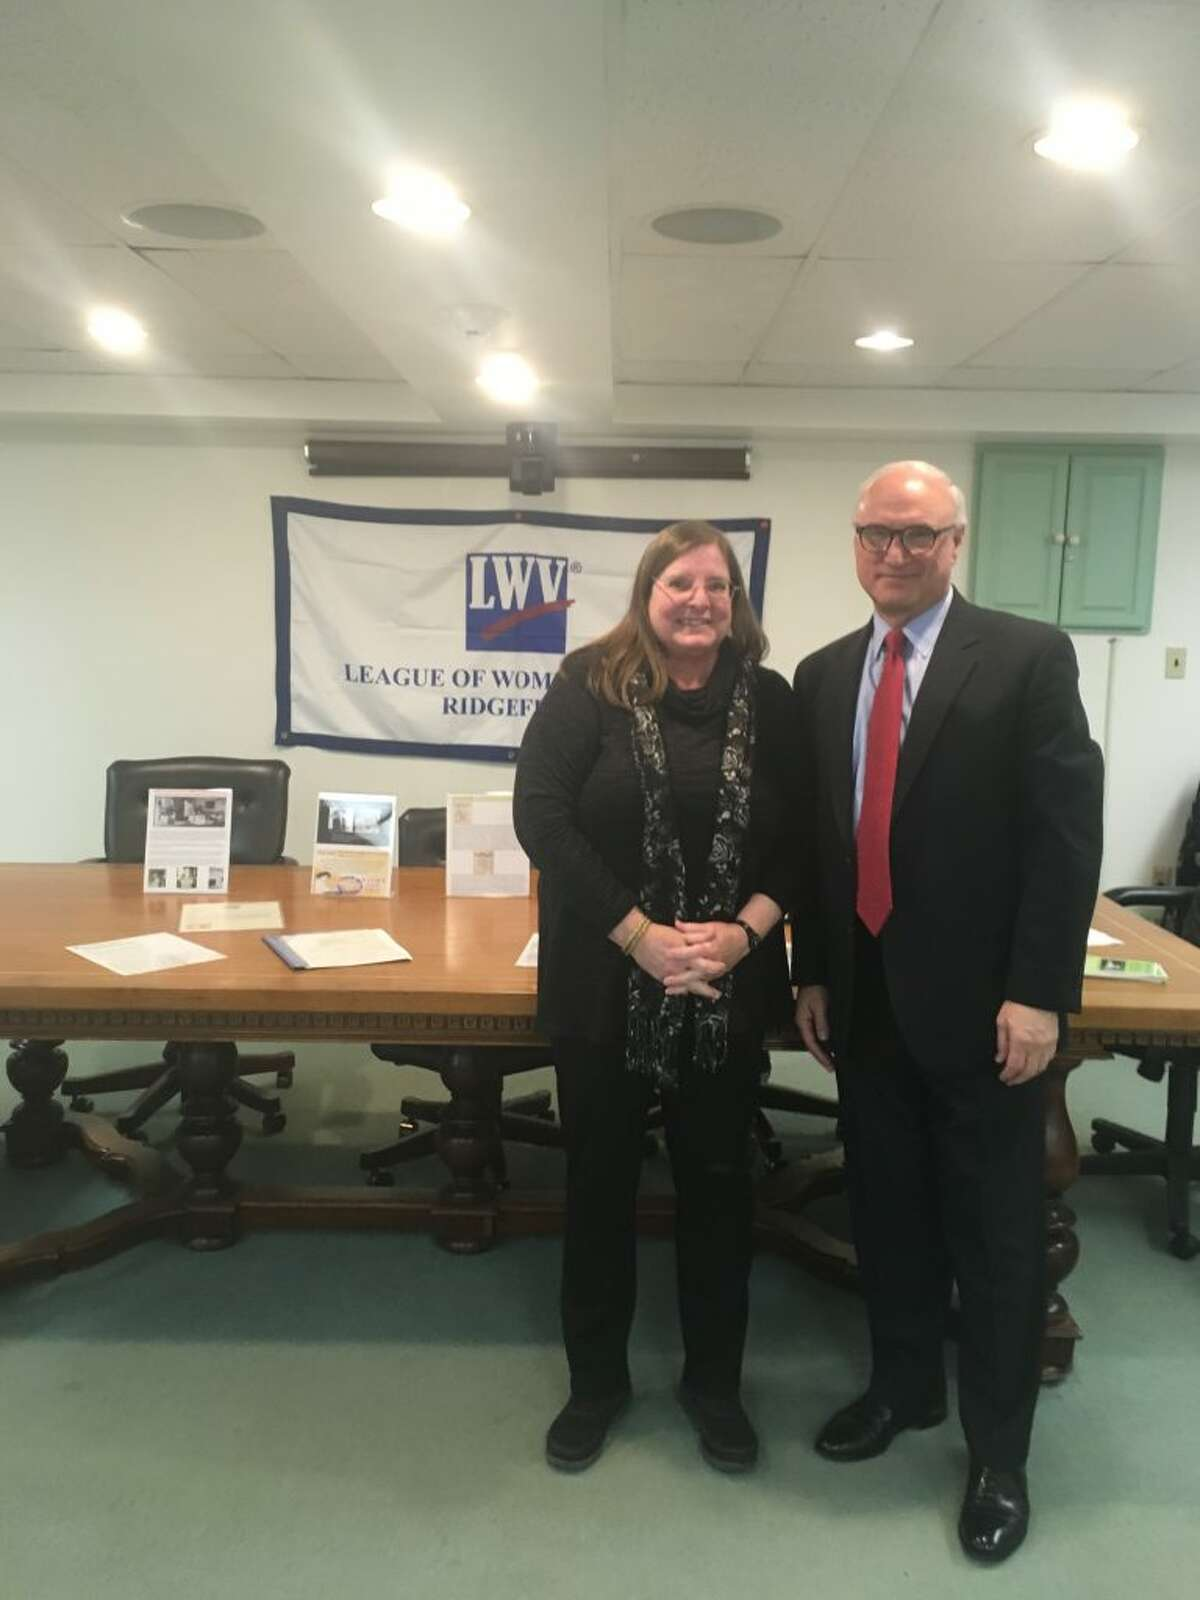 First Selectman Rudy Marconi, right, stands with Marilyn Carroll, president of the League of Women Voters. - Peter Yankowski